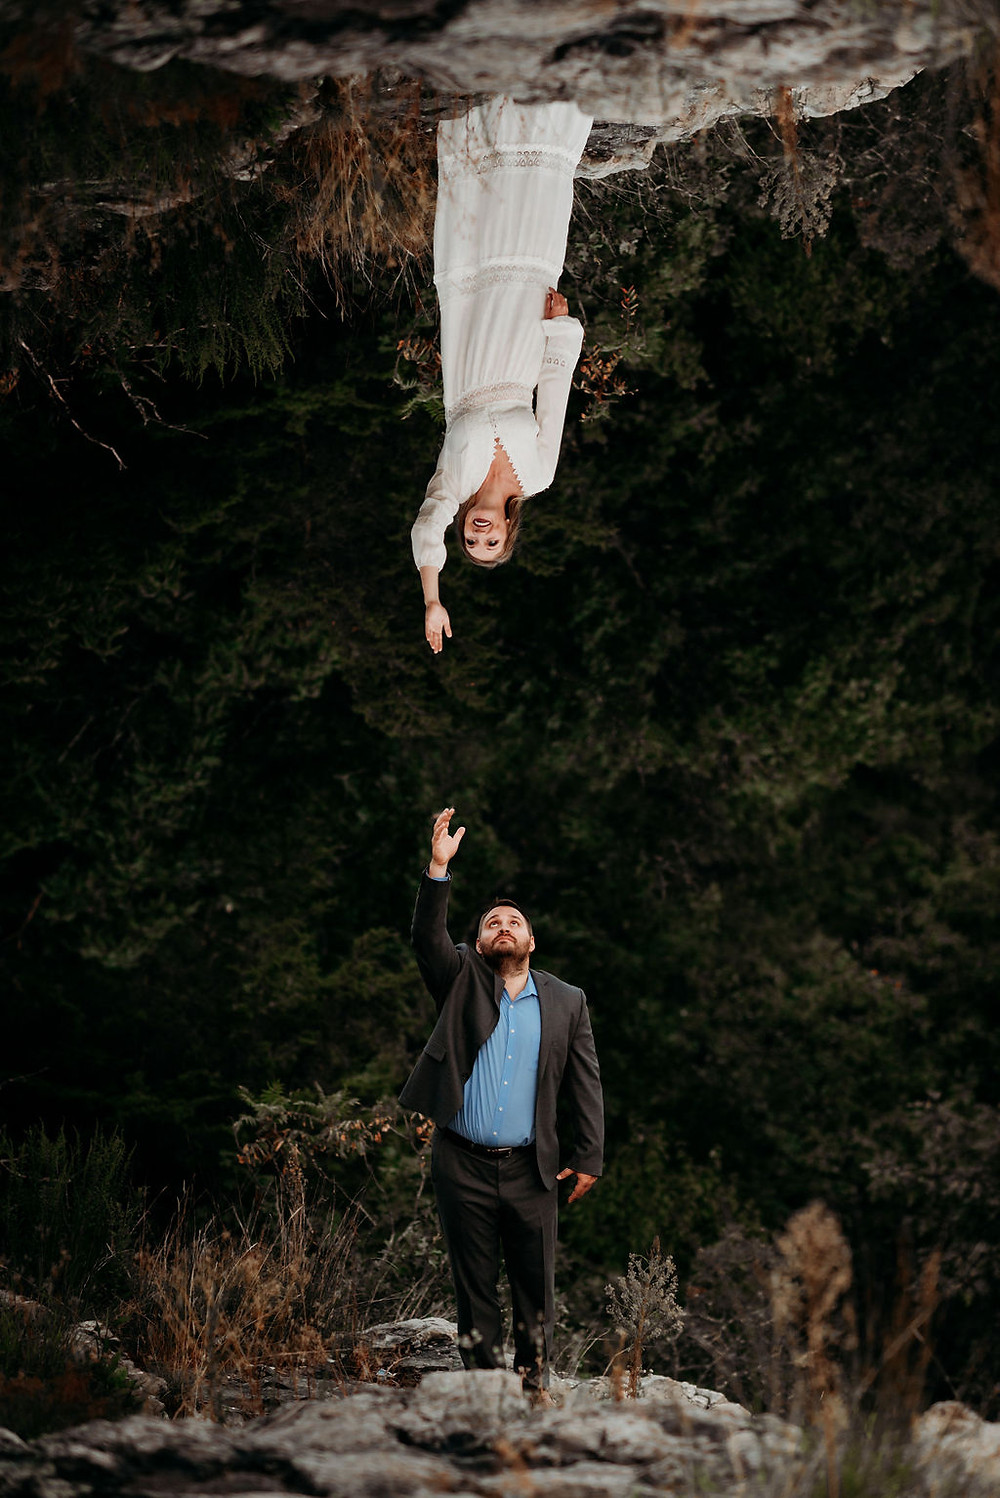 a composition image created in photoshop. the bride and groom are each reaching straight up in the air. The bride's photo is flipped so it looks like she is standing on the top of the photo, reaching down to the groom.